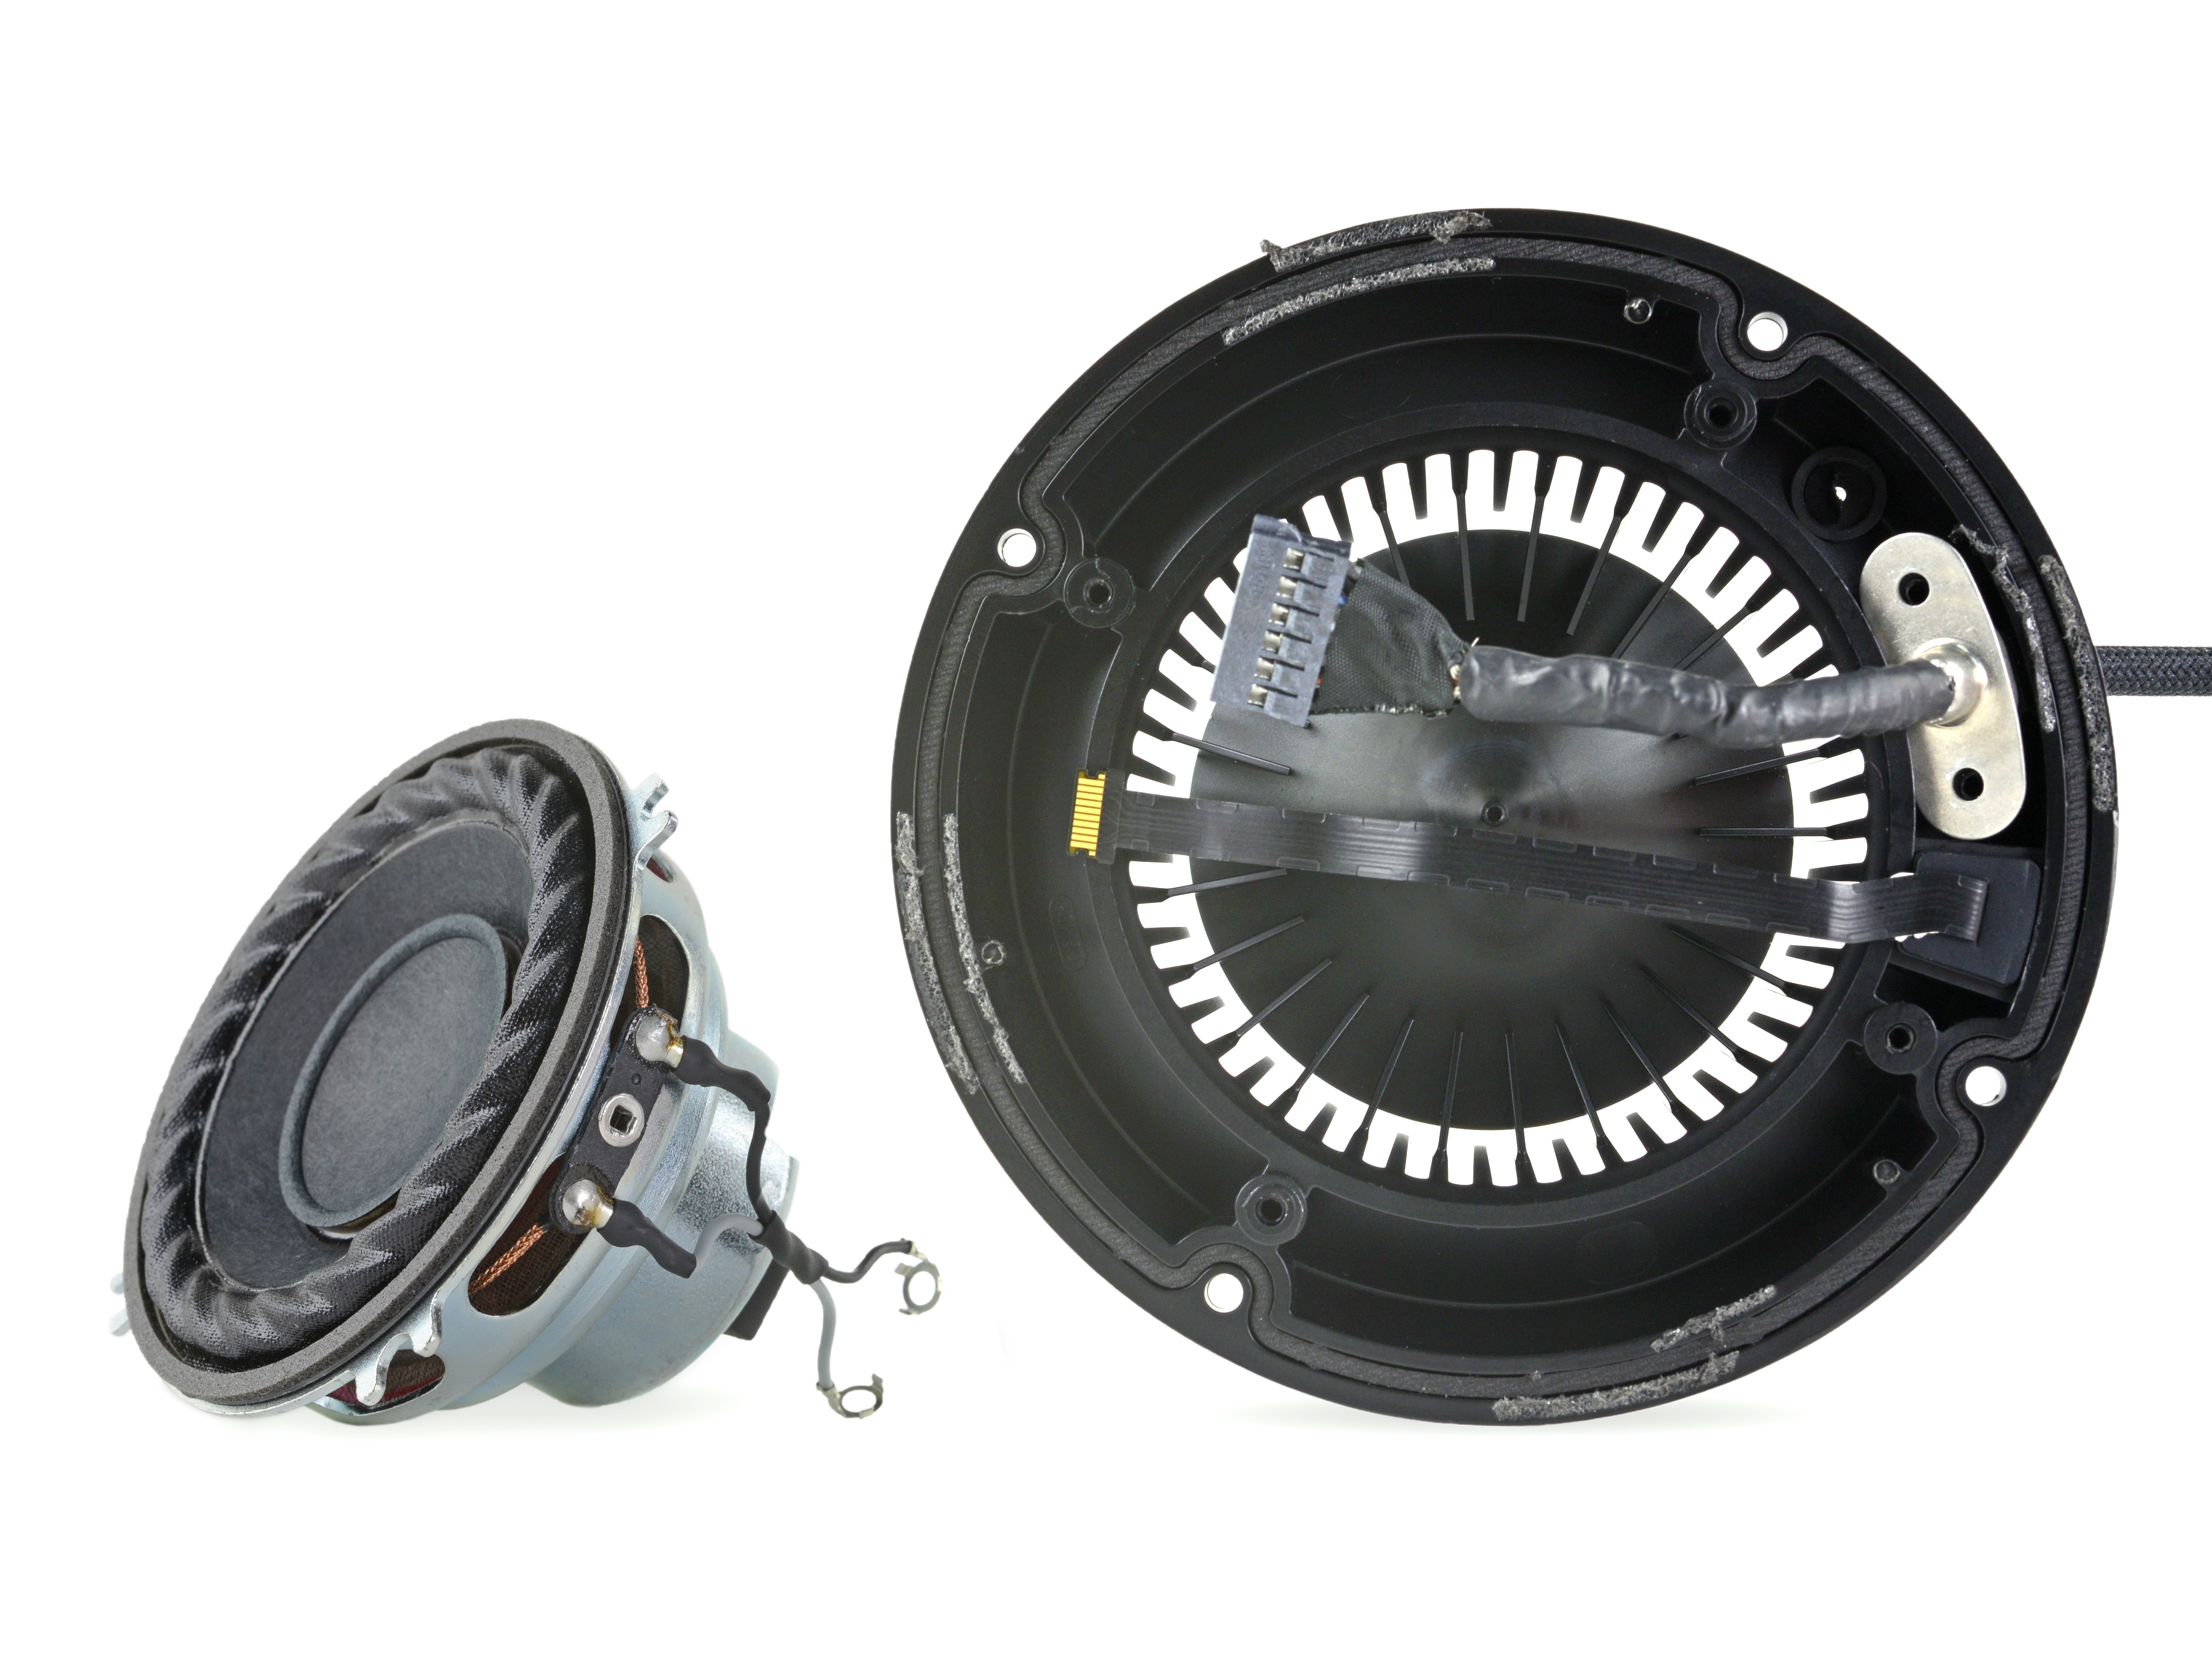 The main speaker driver and outer shell with sound guide